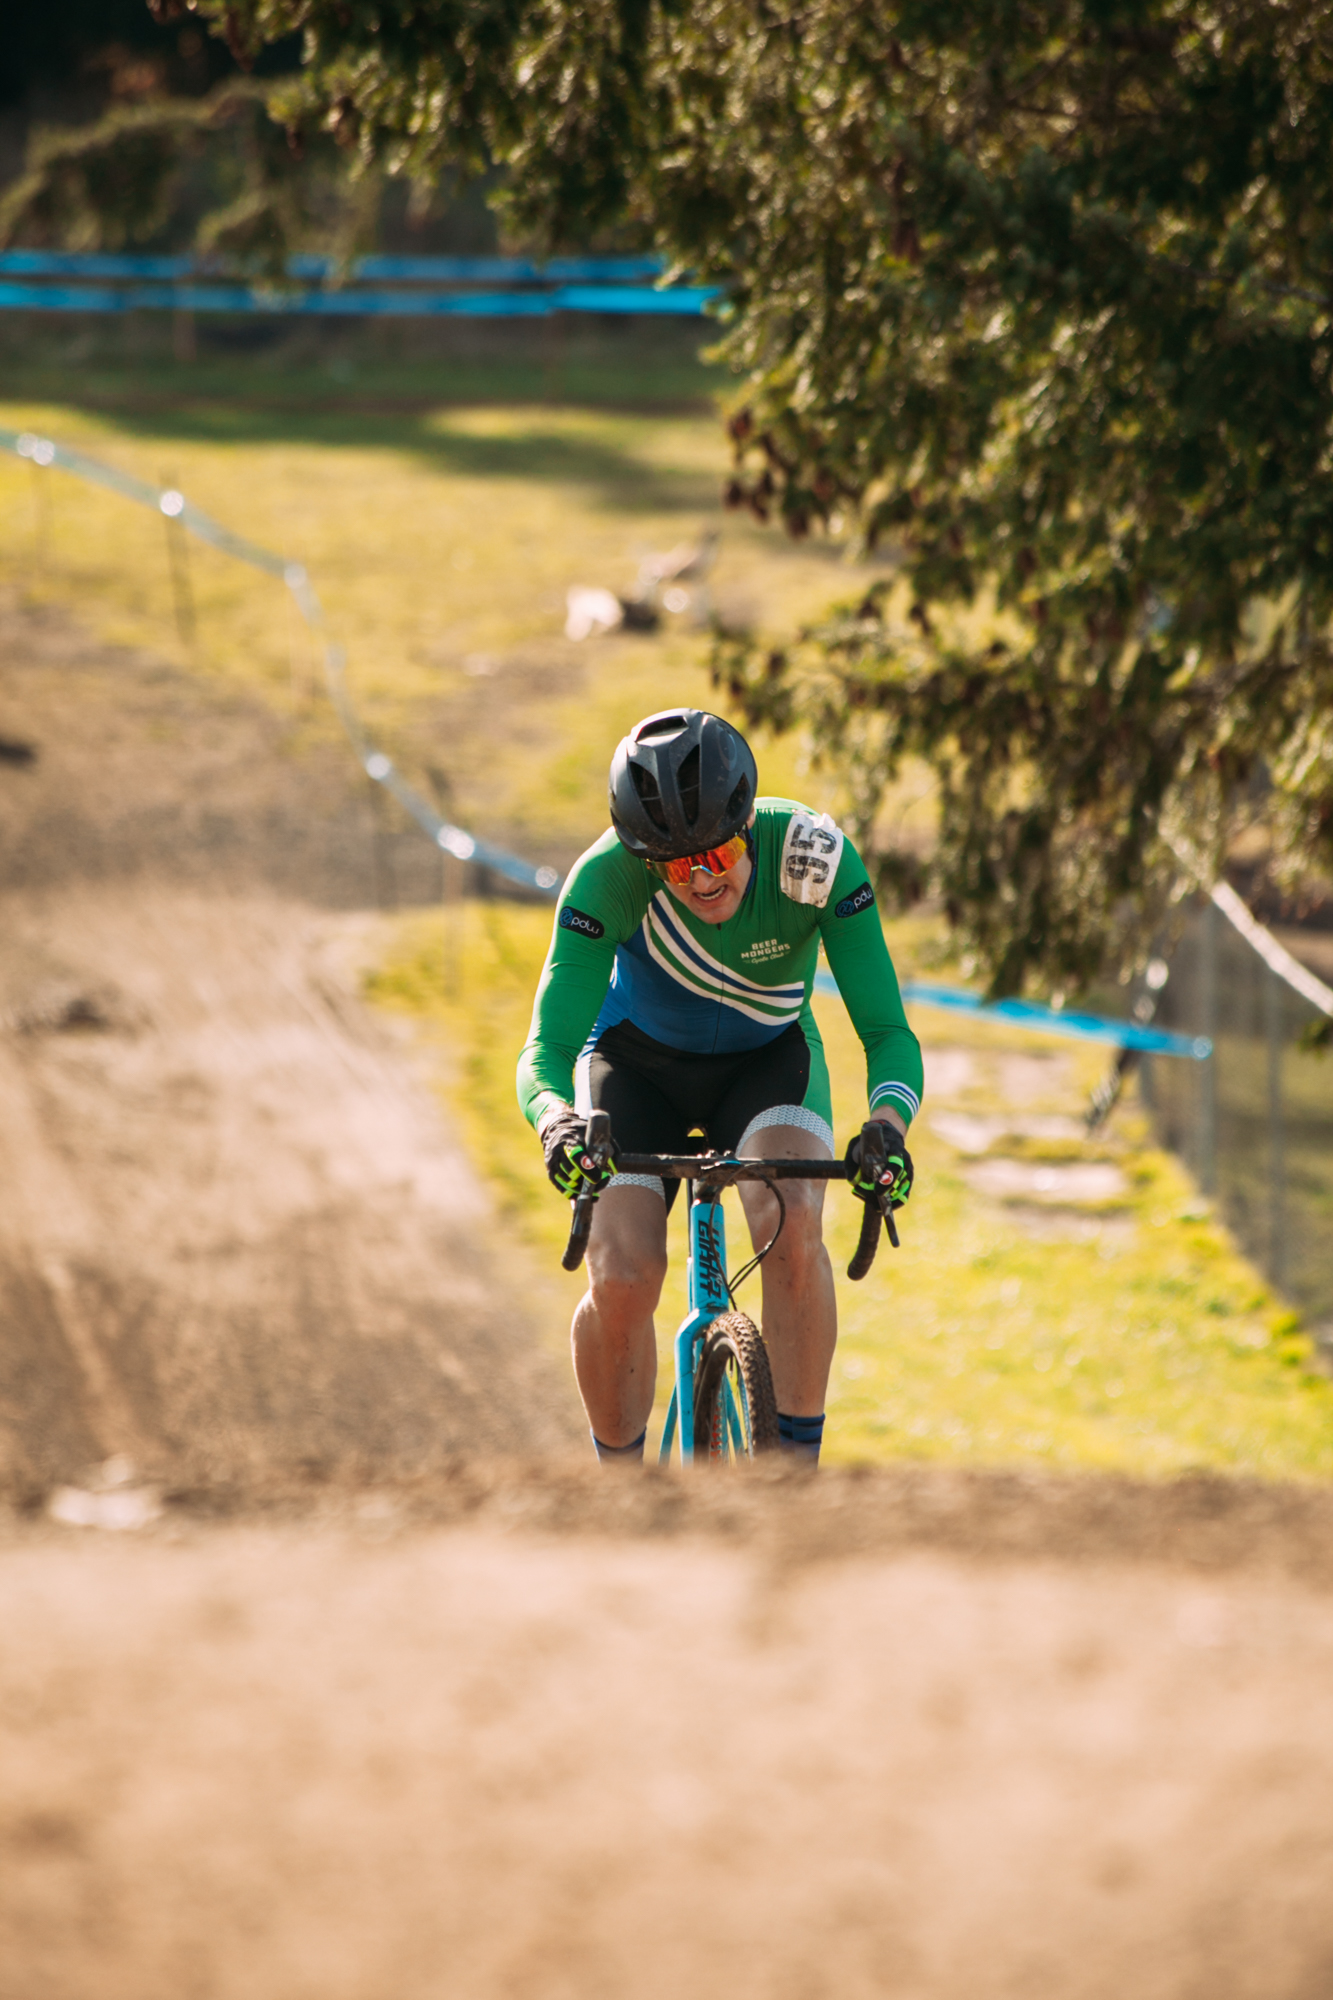 Cyclocross18_CCCX_RainierHS-192-mettlecycling.jpg